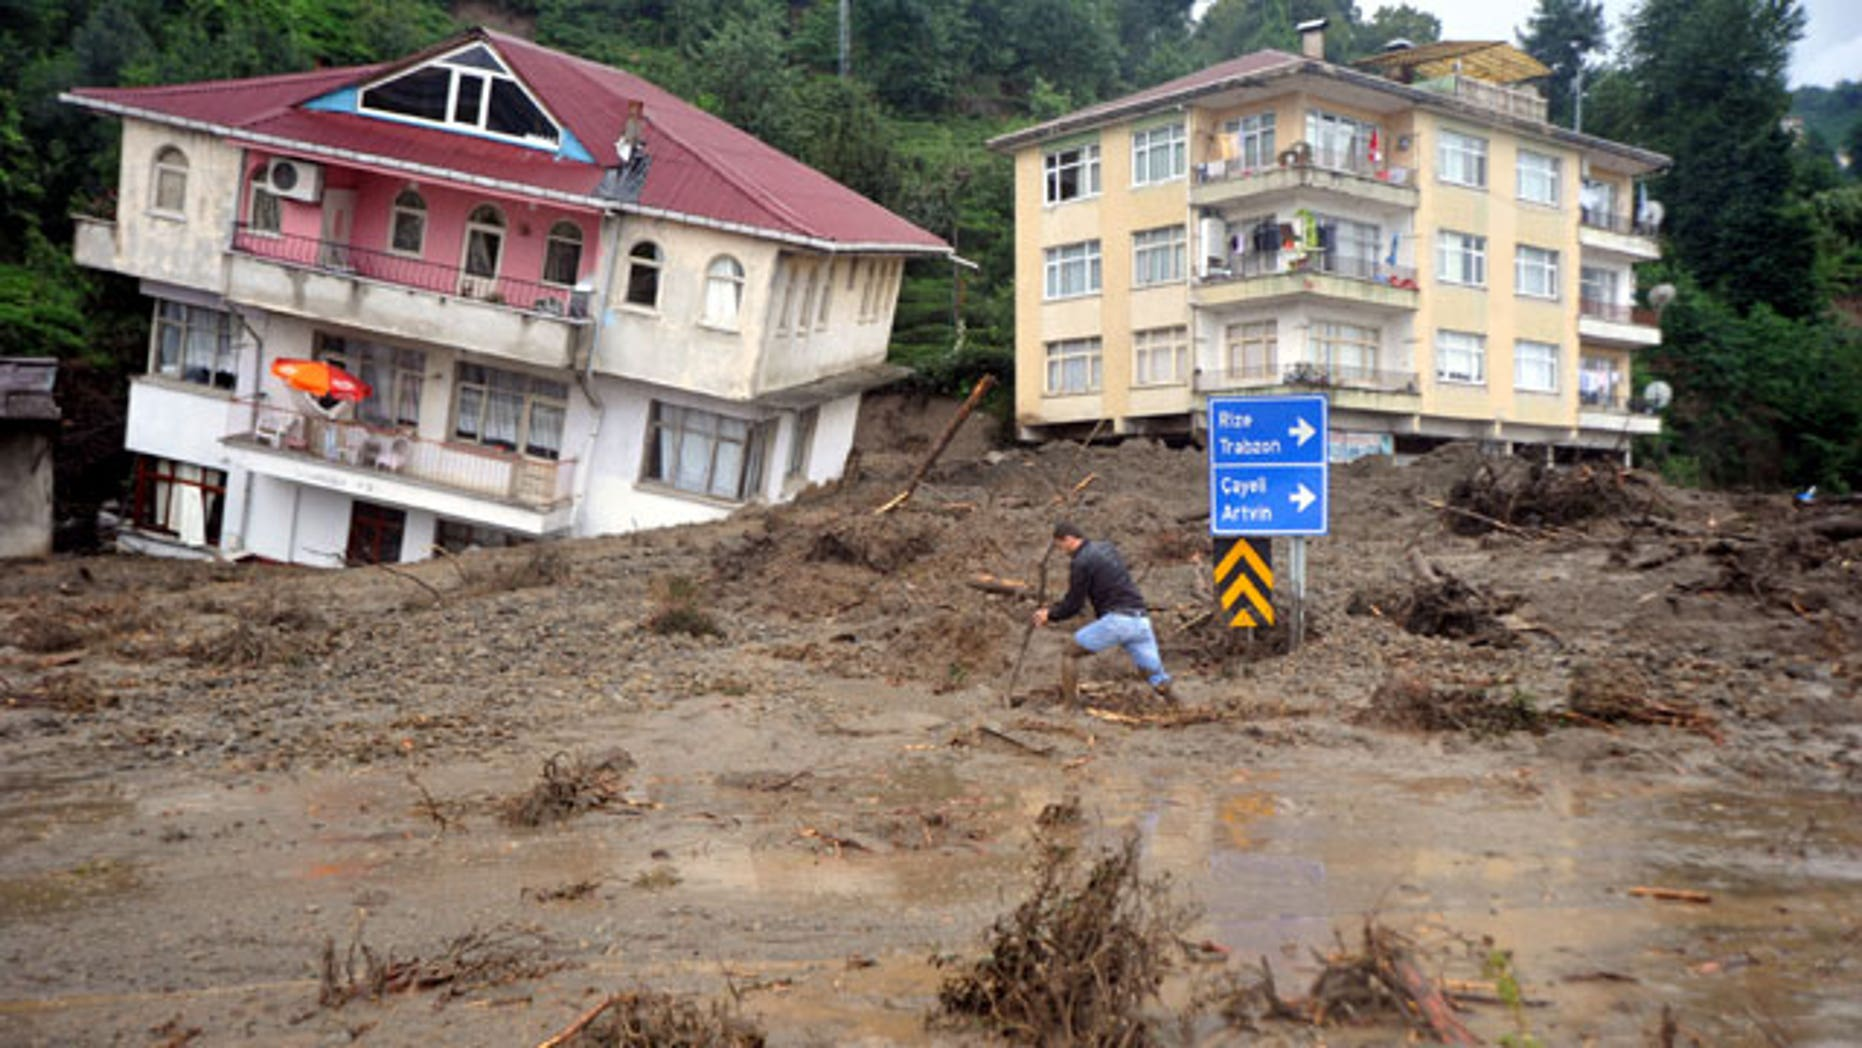 A man walks past a house tilted sideways after landslides and floods triggered by heavy rains swept through a Gundogdu near Turkey's Black Sea coast on Friday, Aug. 27, 2010. People were killed when the landslide collapsed homes in Gundogdu, in the tea-growing Black Sea province of Rize.